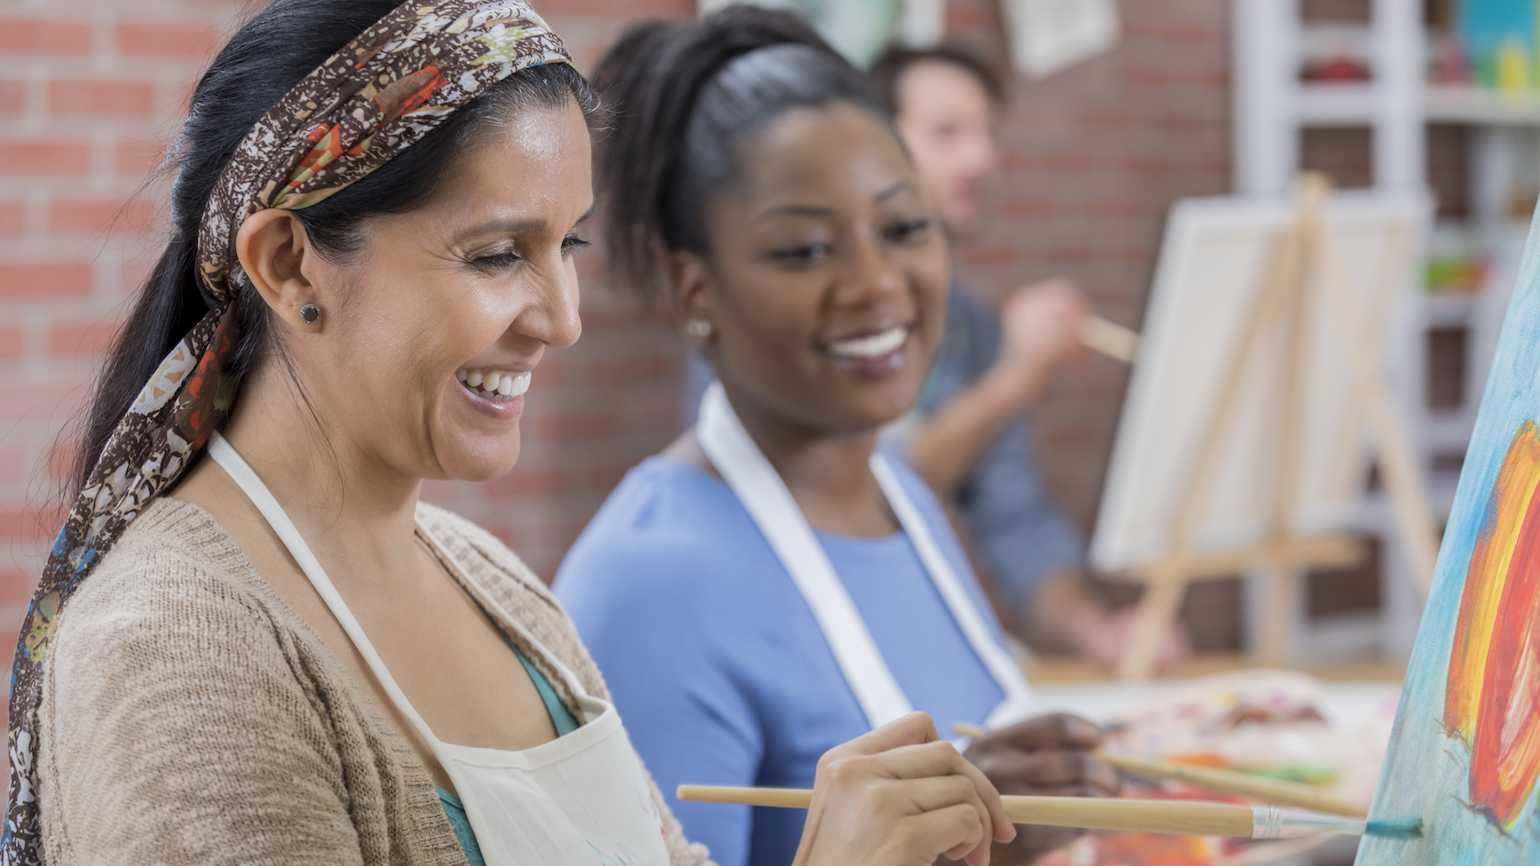 Painting can ease stress